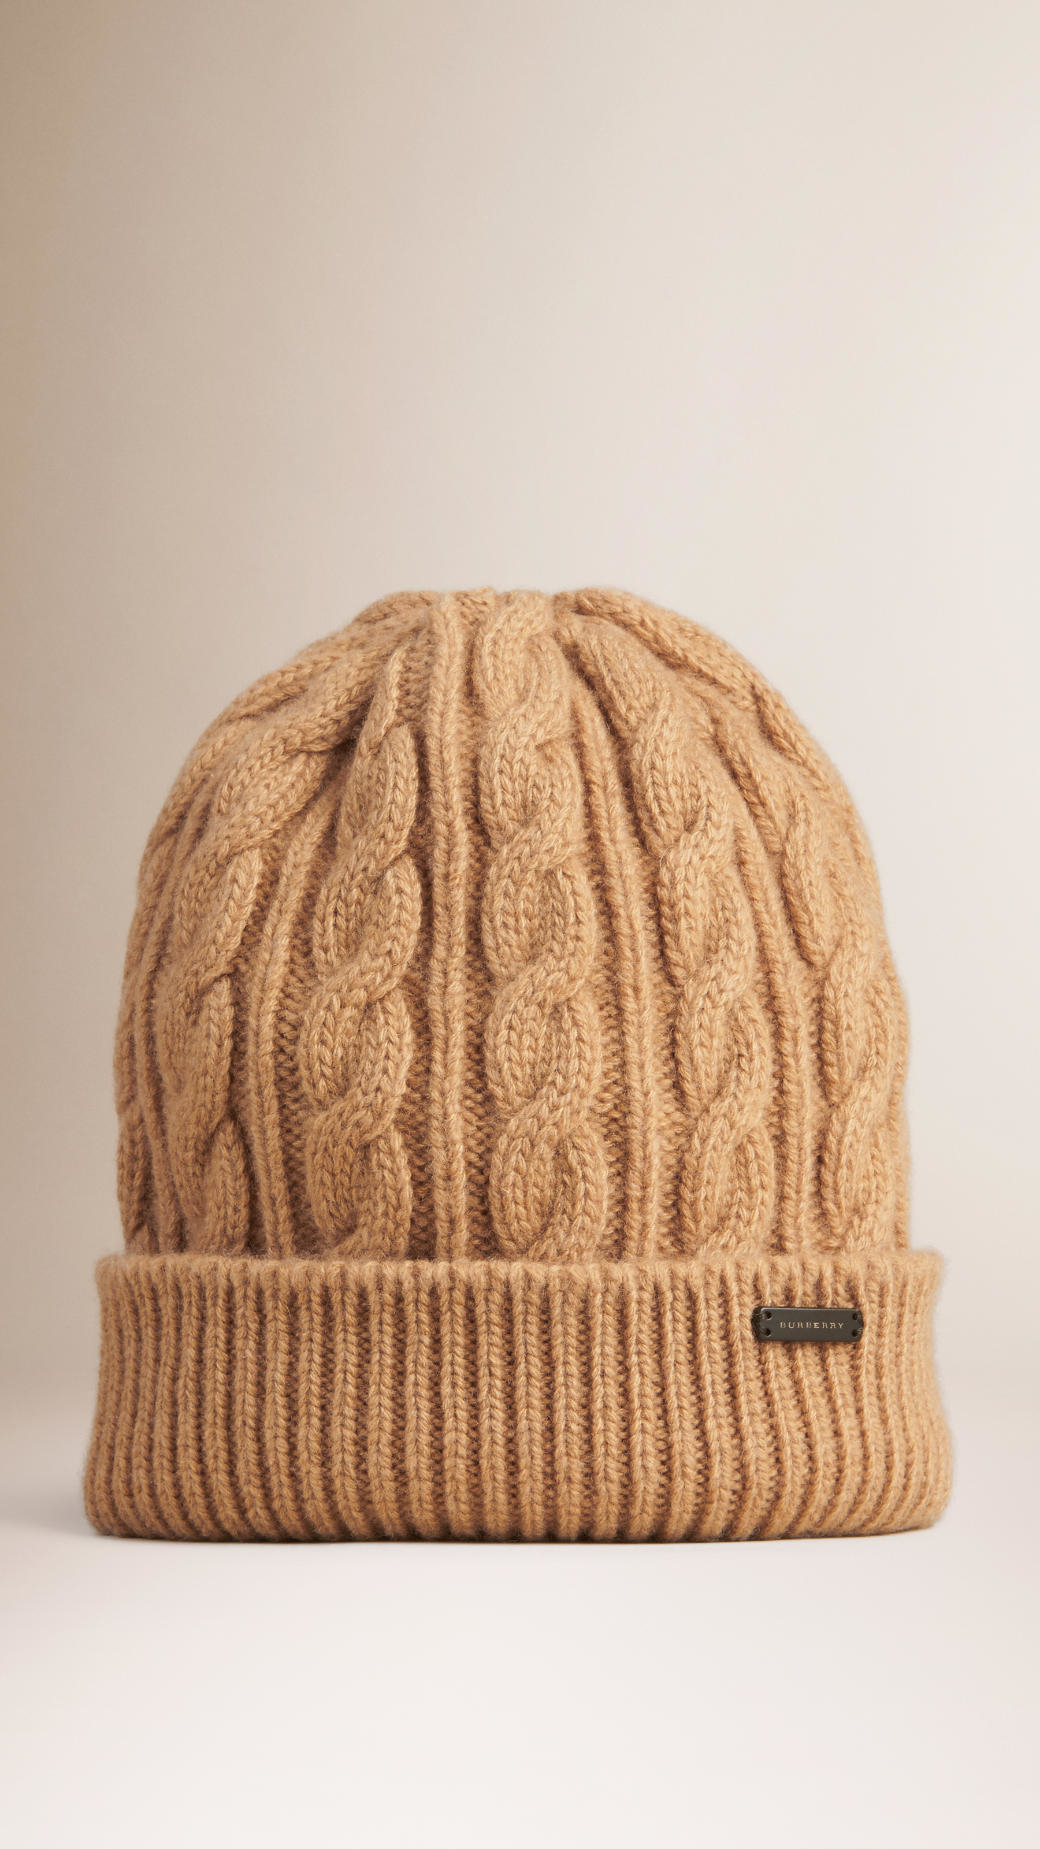 Knitting Patterns Cashmere Wool : Burberry Cable Knit Wool Cashmere Beanie in Natural Lyst